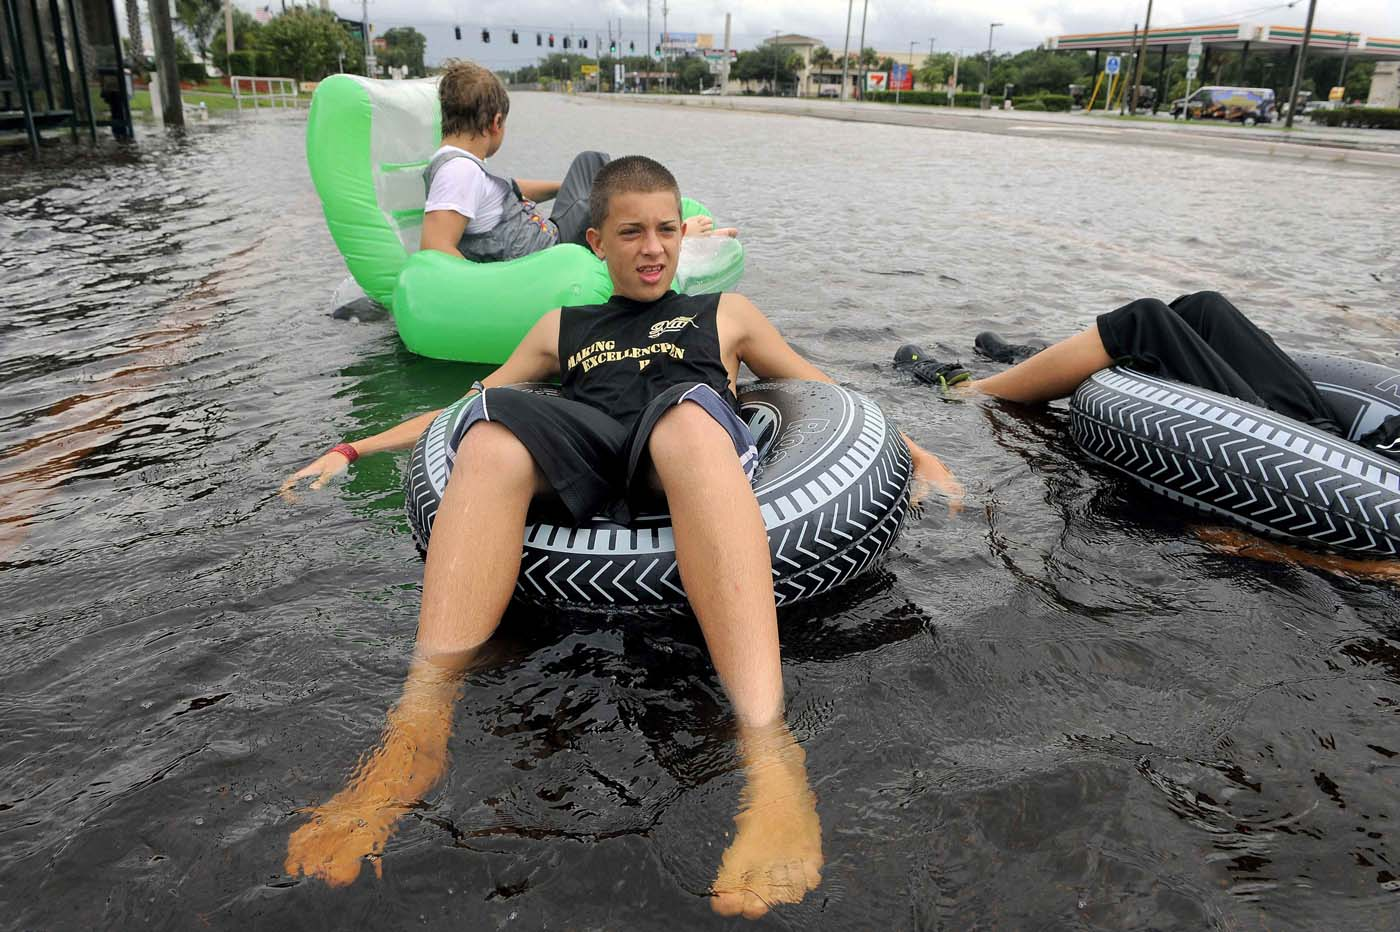 Matt Smeaton (C), 14, joins friends as they float down a closed six-lane road as floodwater associated with Tropical Storm Debby rises around them in New Port Richey, Florida, June 26, 2012. (Brian Blanco/Reuters)